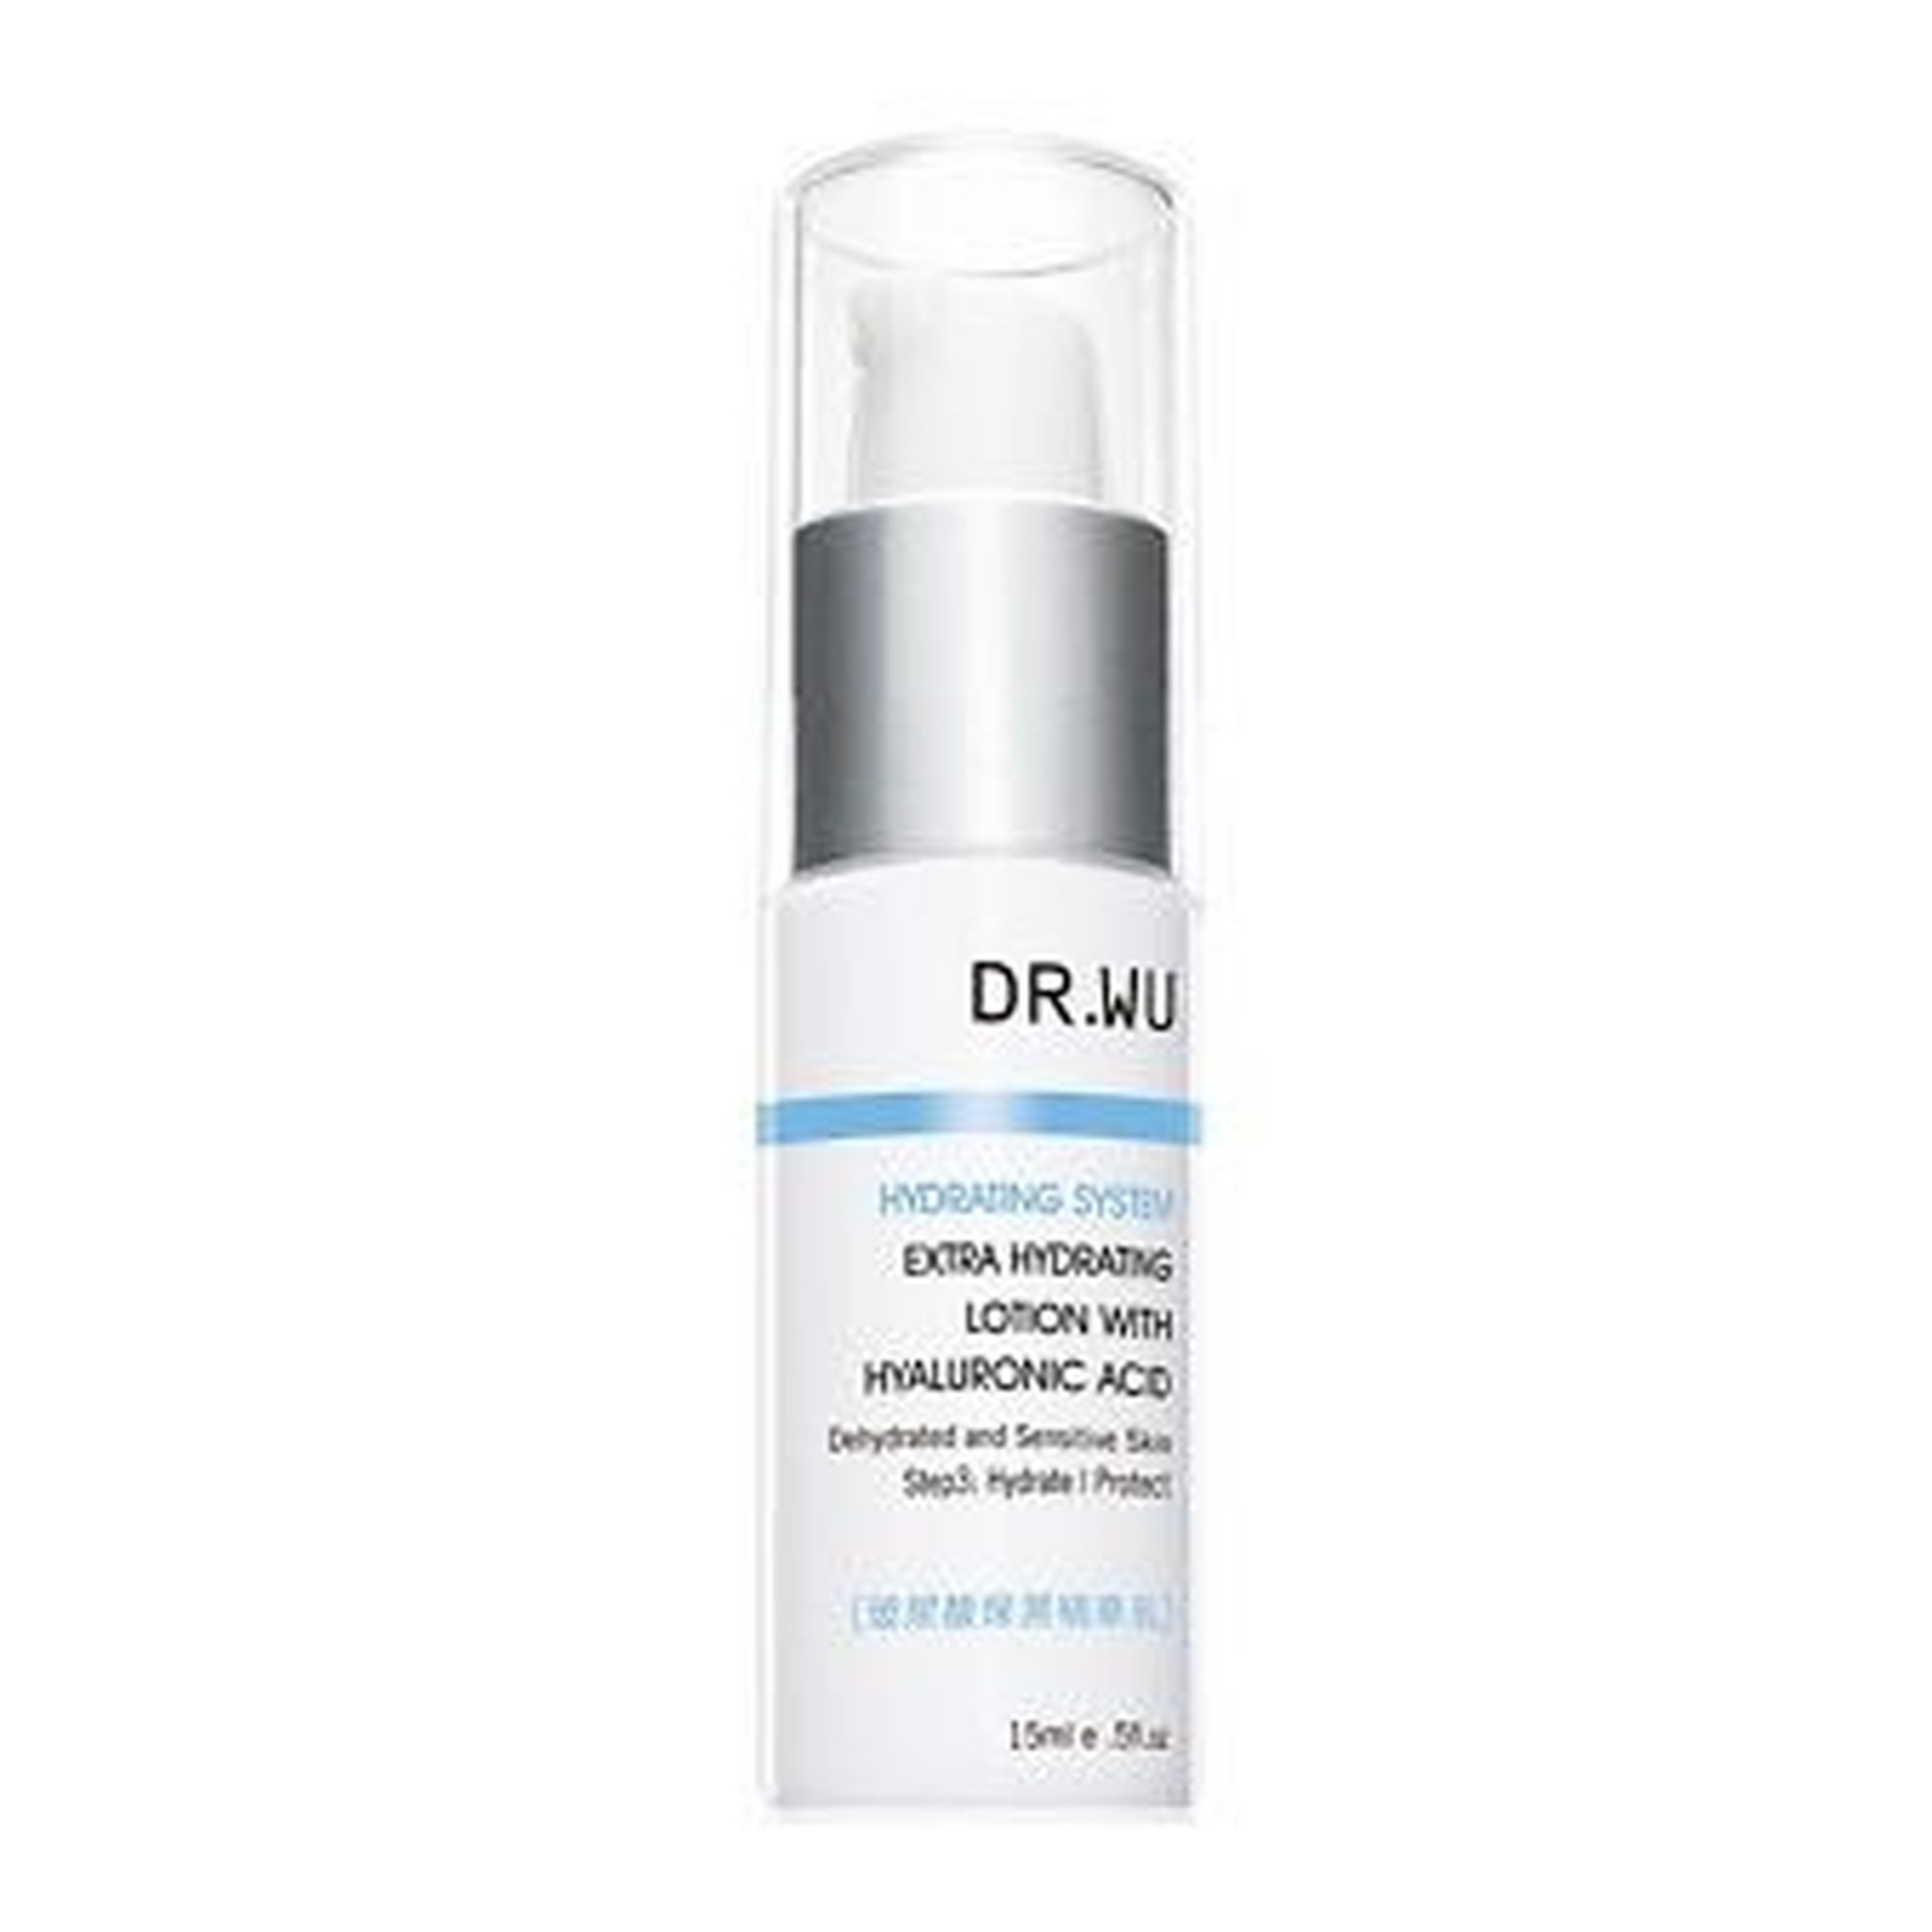 Serum cấp ẩm chuyên sâu DR.WU Hydrating System Extra Hydrating Lotion With Hyaluronic Acid (15ml)